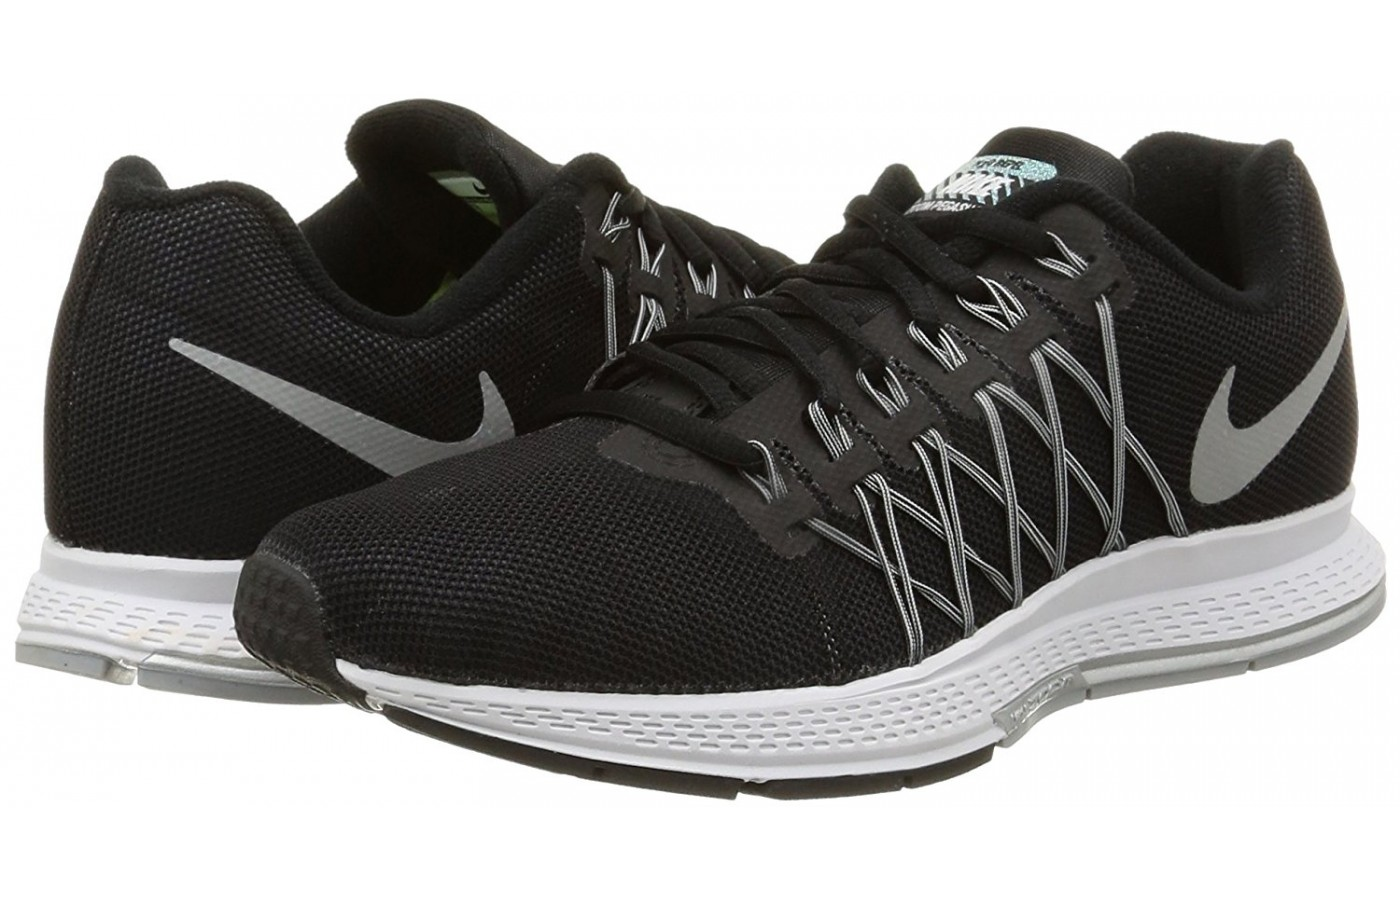 A opair of the Nike Zoom Pegasus 32 running shoes.